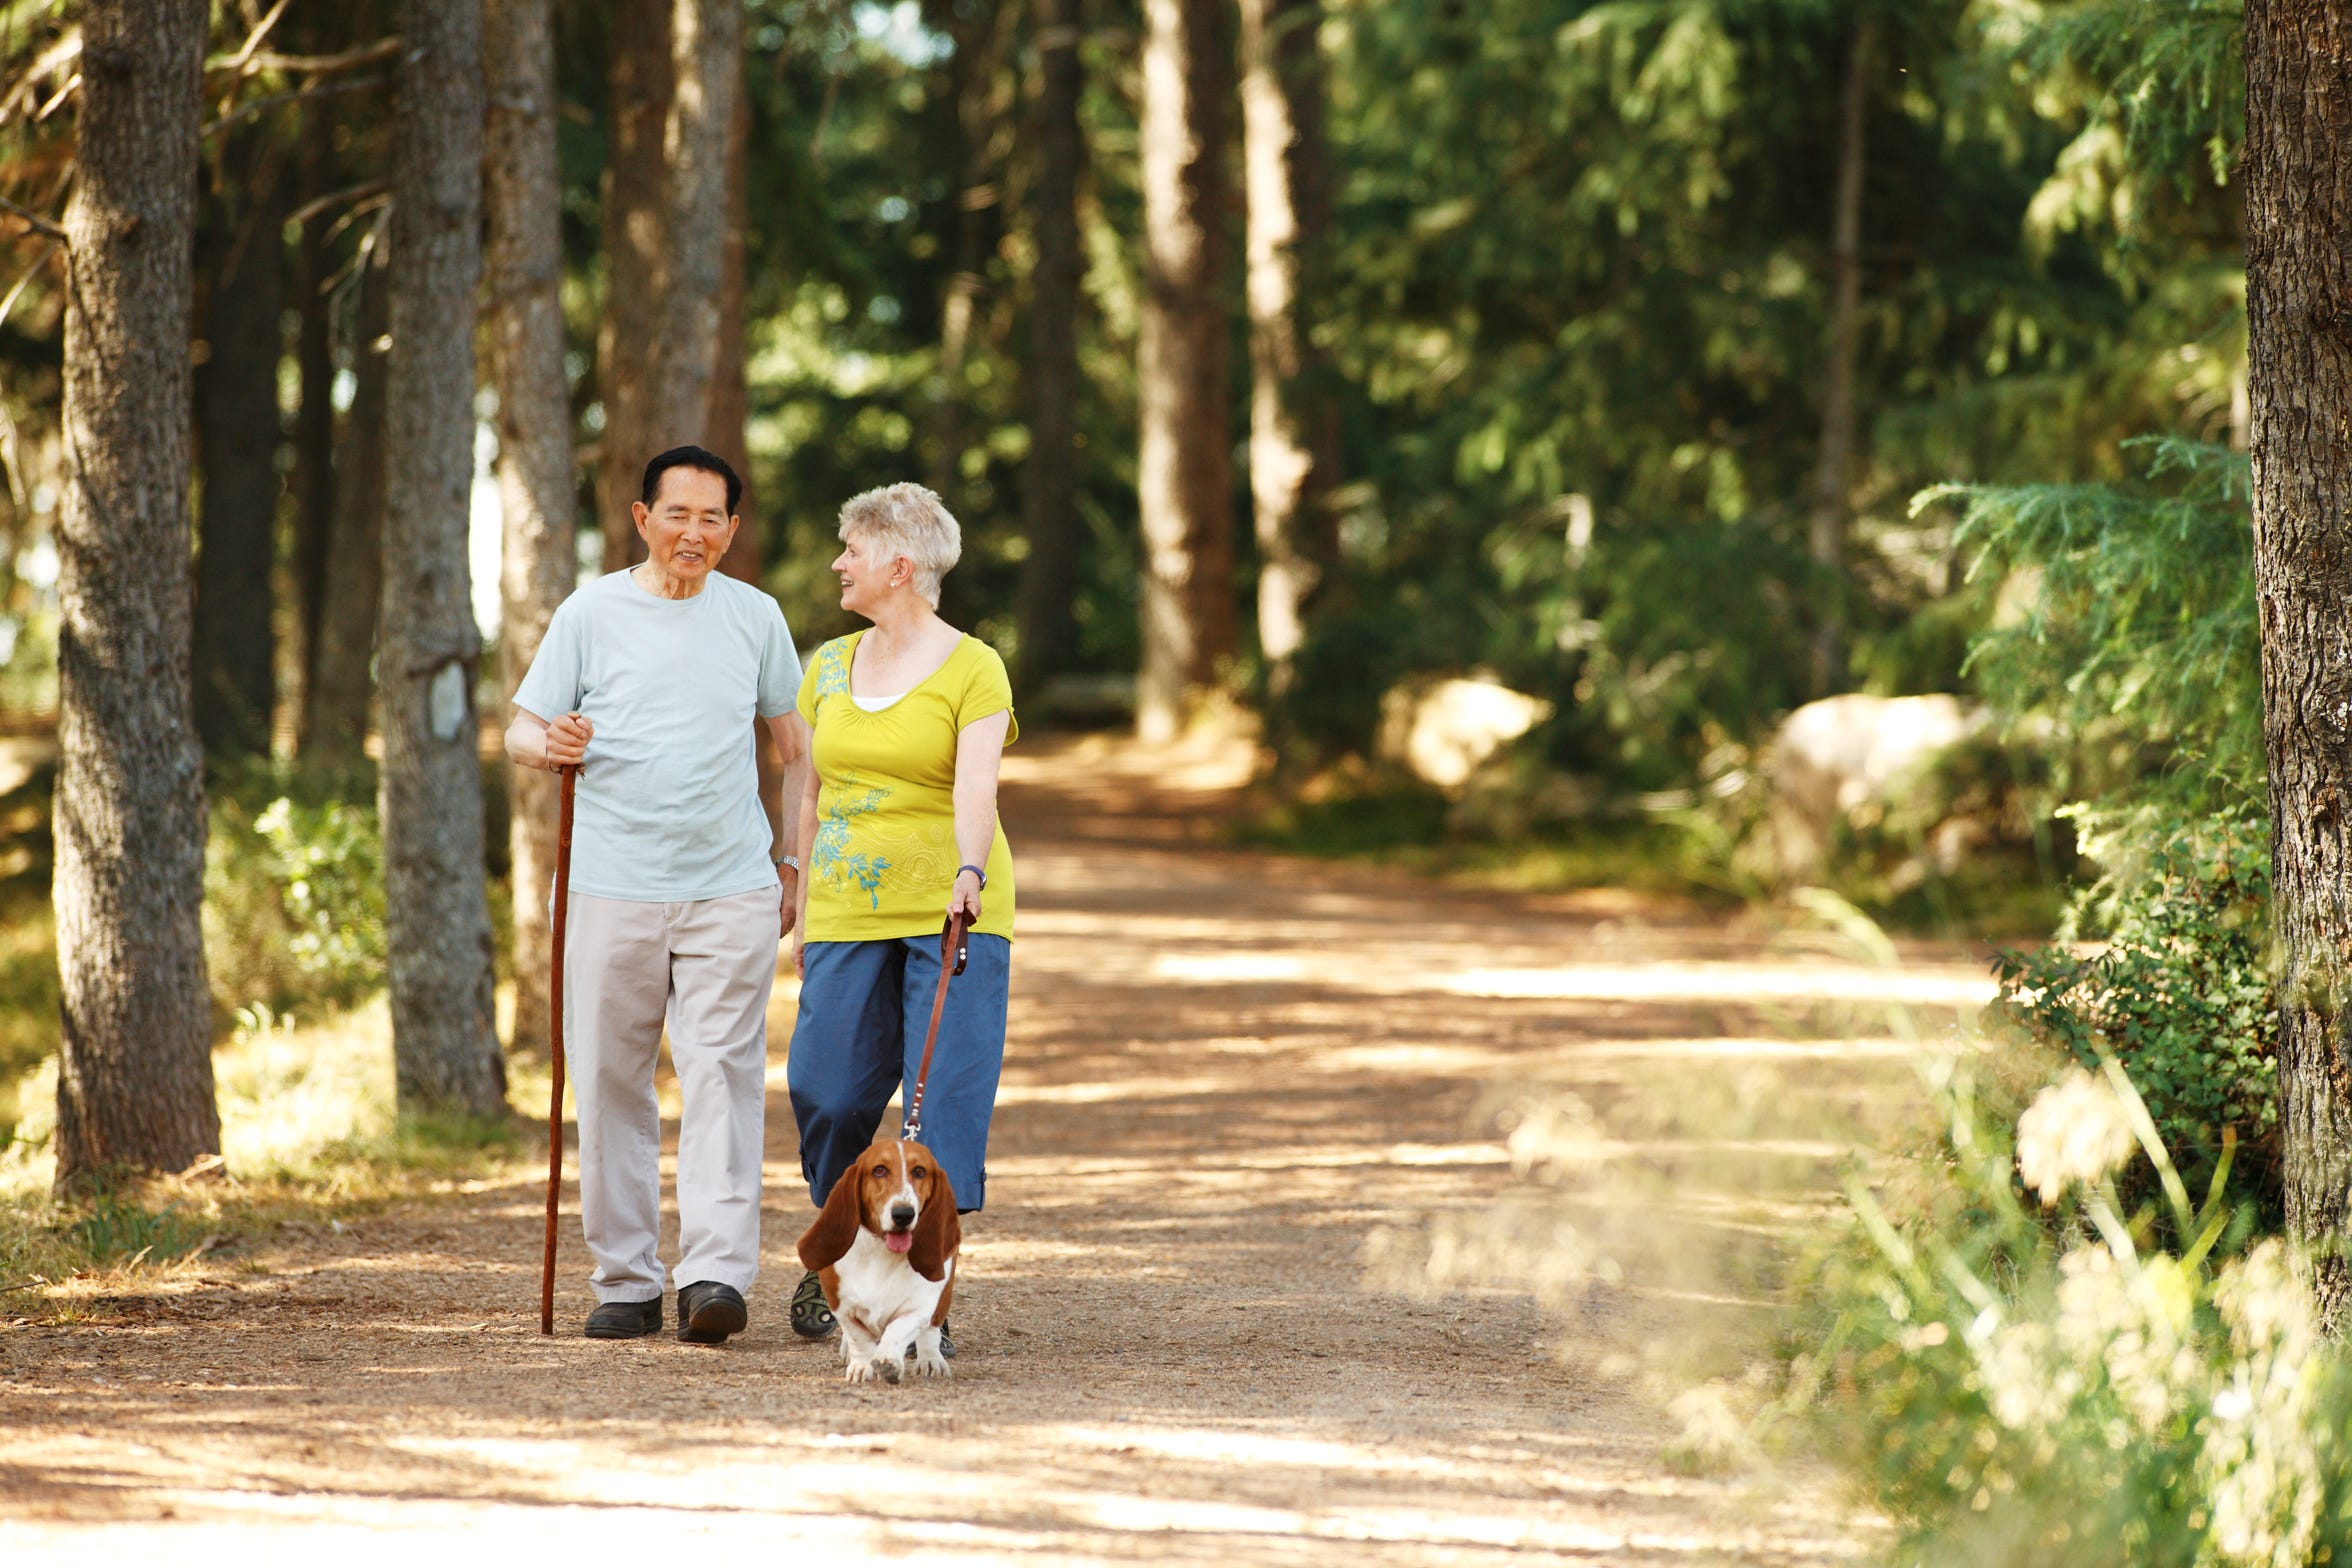 Walks through a quiet forest can help alleviate stress and improve physical health.